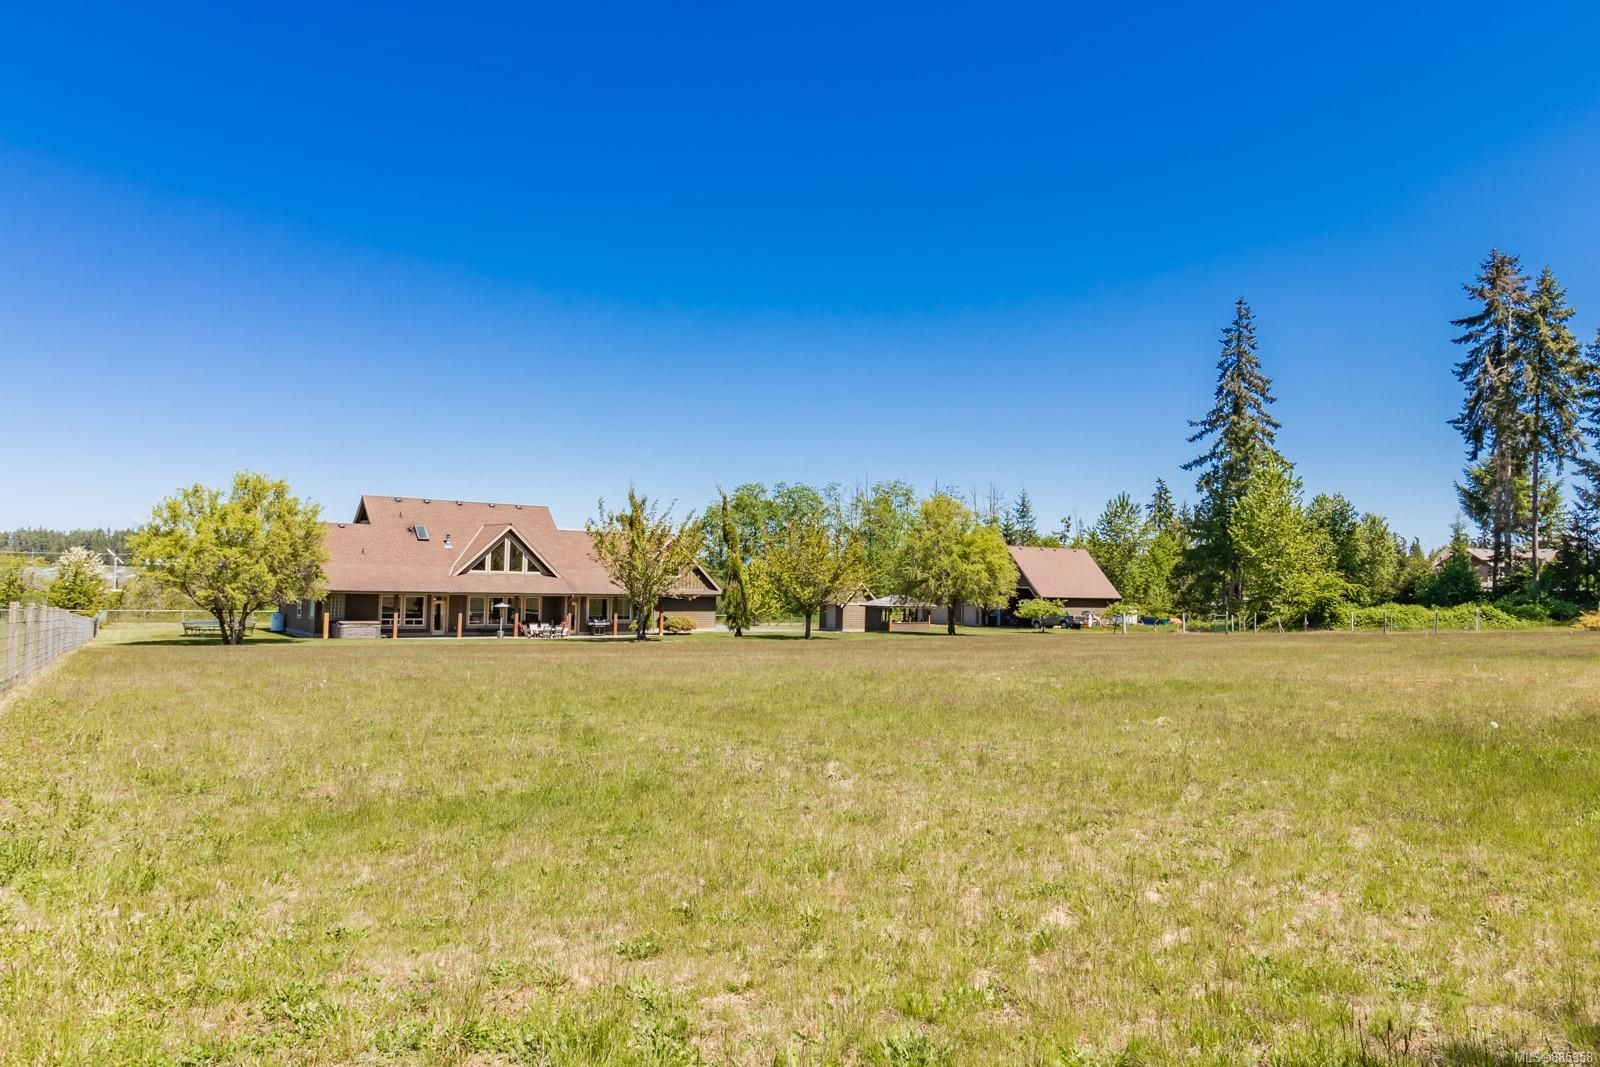 Photo 62: Photos: 2850 Peters Rd in : PQ Qualicum Beach House for sale (Parksville/Qualicum)  : MLS®# 885358